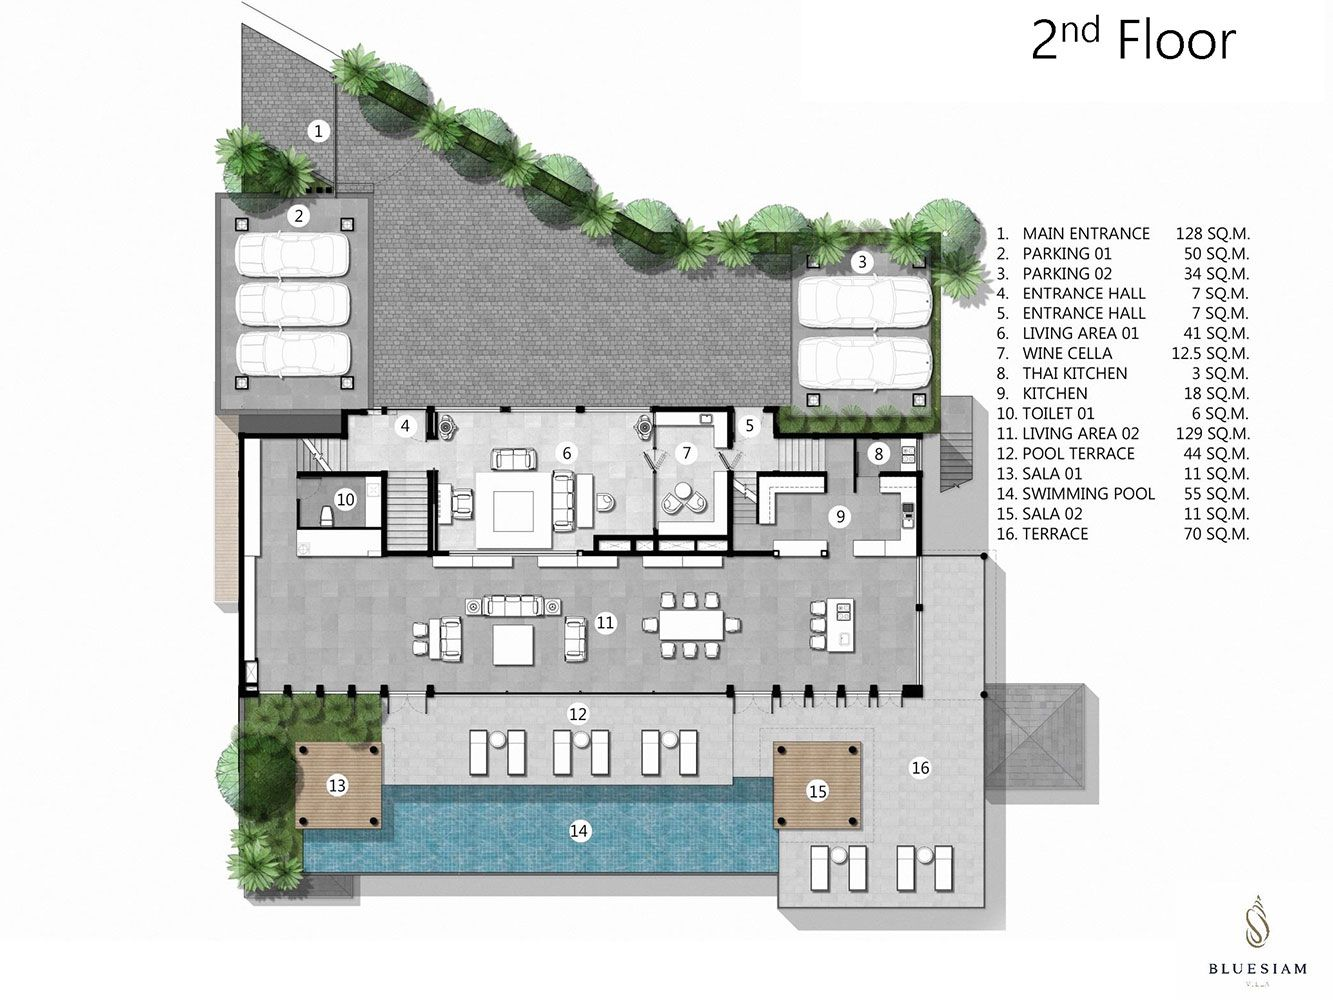 Villa 39 S Floor Plan Bluesiam Villa Phuket Thailand Exclusive Beachfront Holiday Villa Arsitektur Denah Rumah Rumah